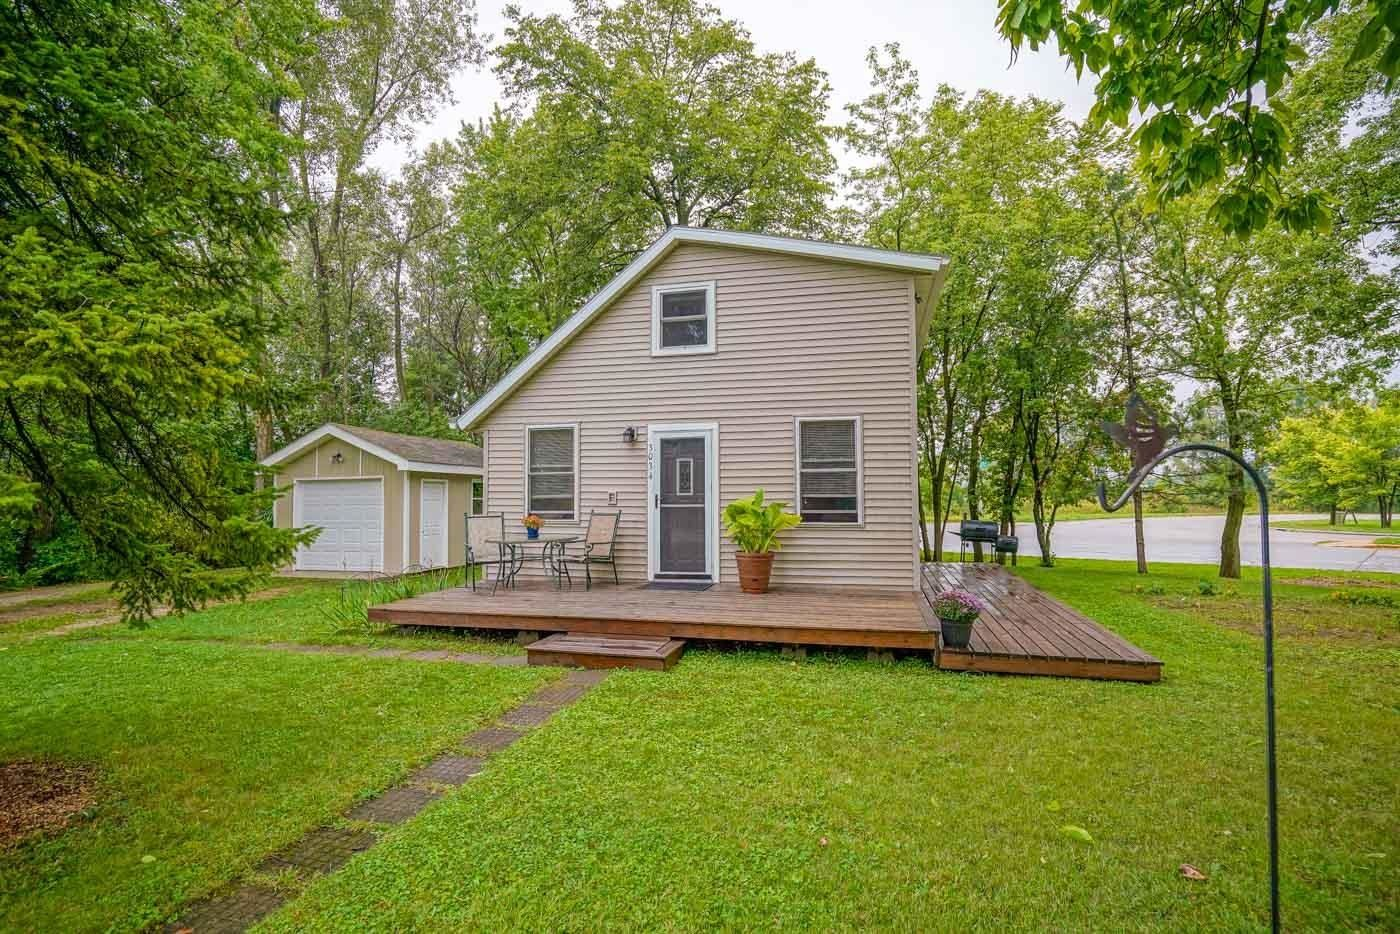 3034 Anderberg Dr, Fitchburg, WI 53713 - #: 1918483